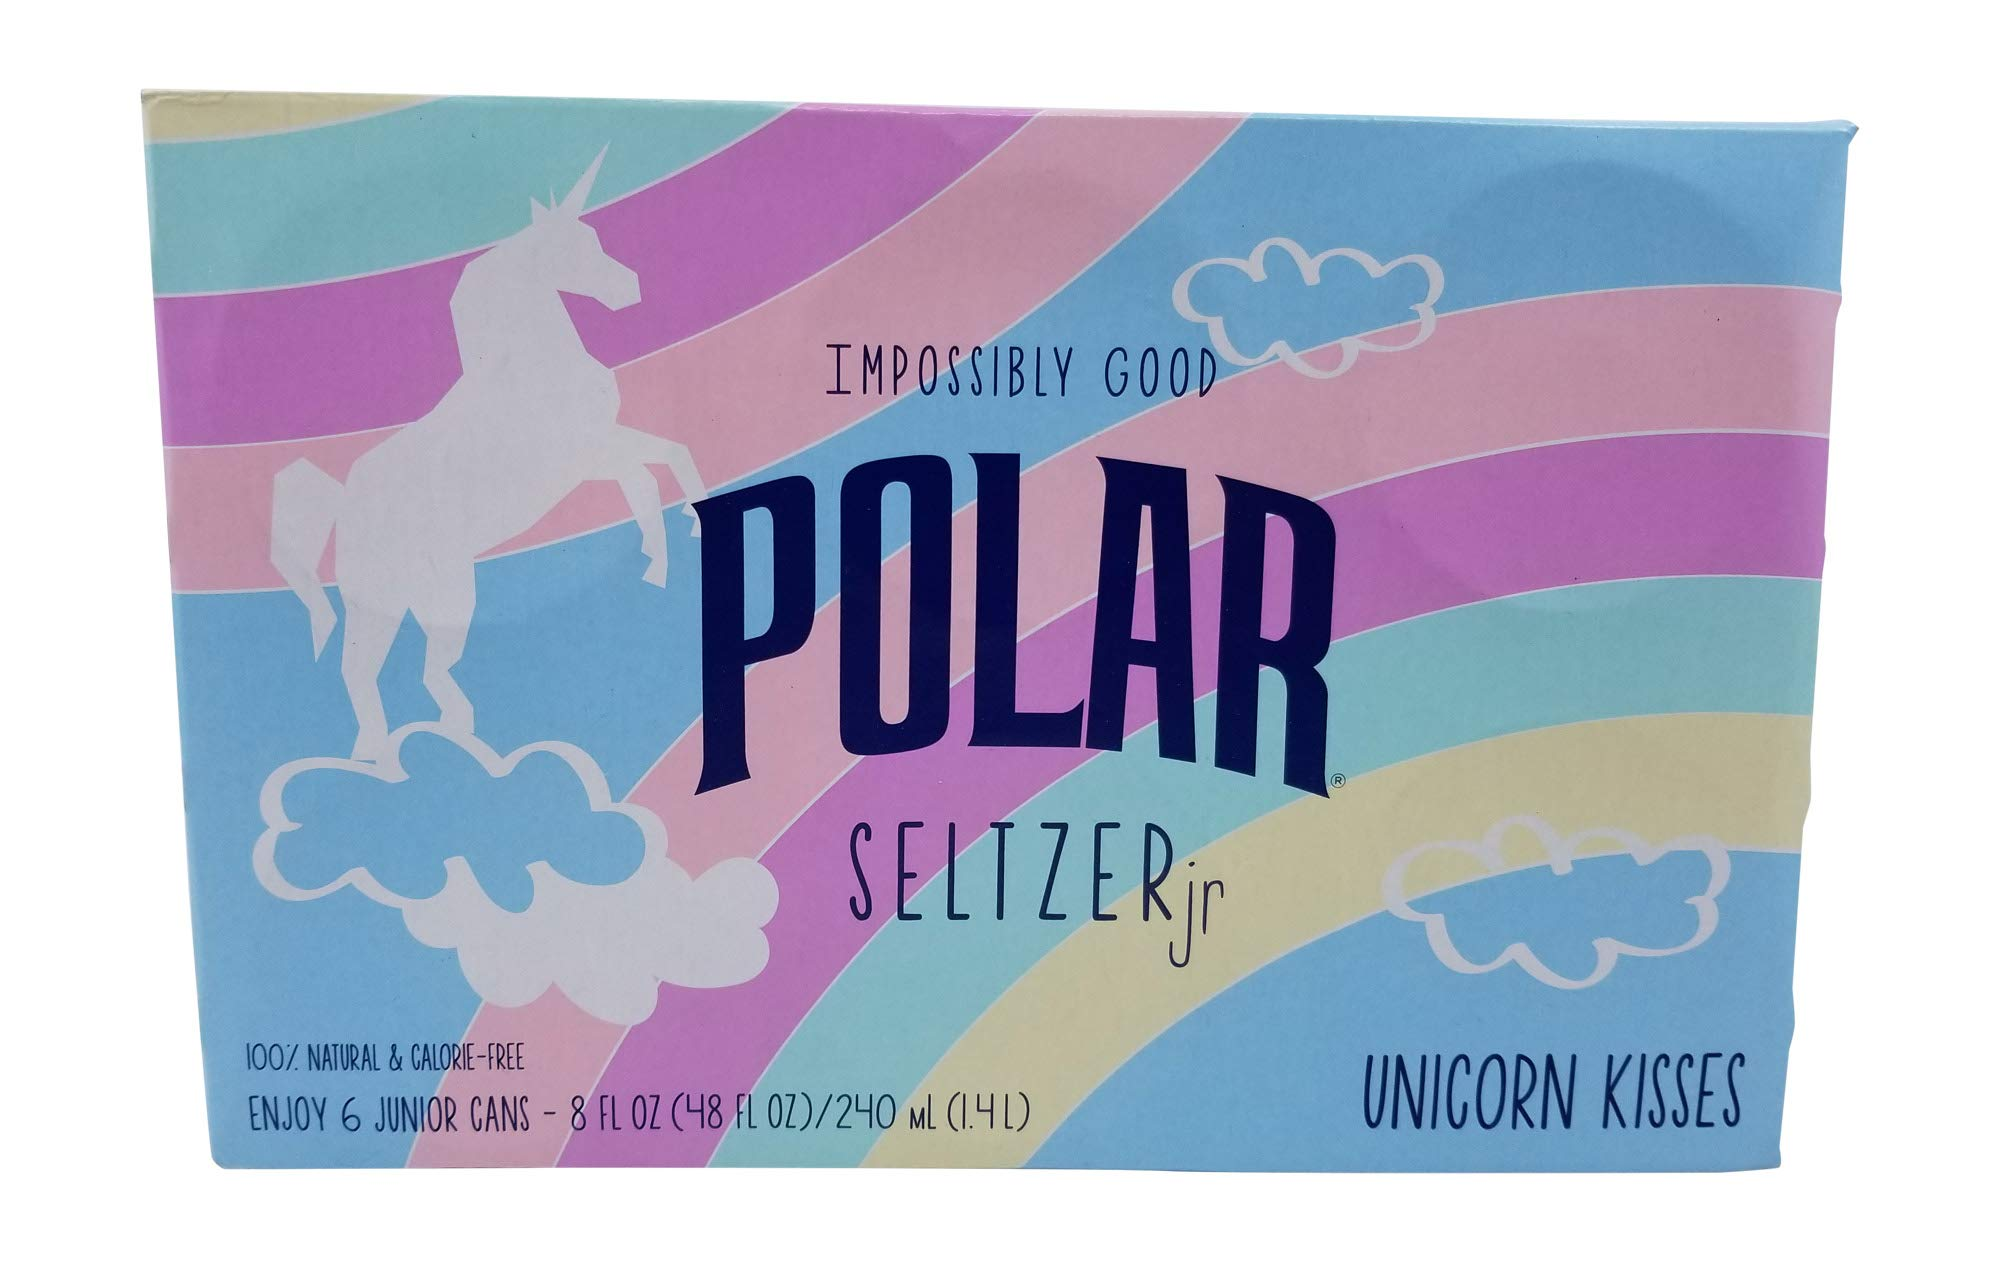 Polar Seltzer Impossibly Good Unicorn Kisses 6 pk 8 oz. cans. by Polar beverage